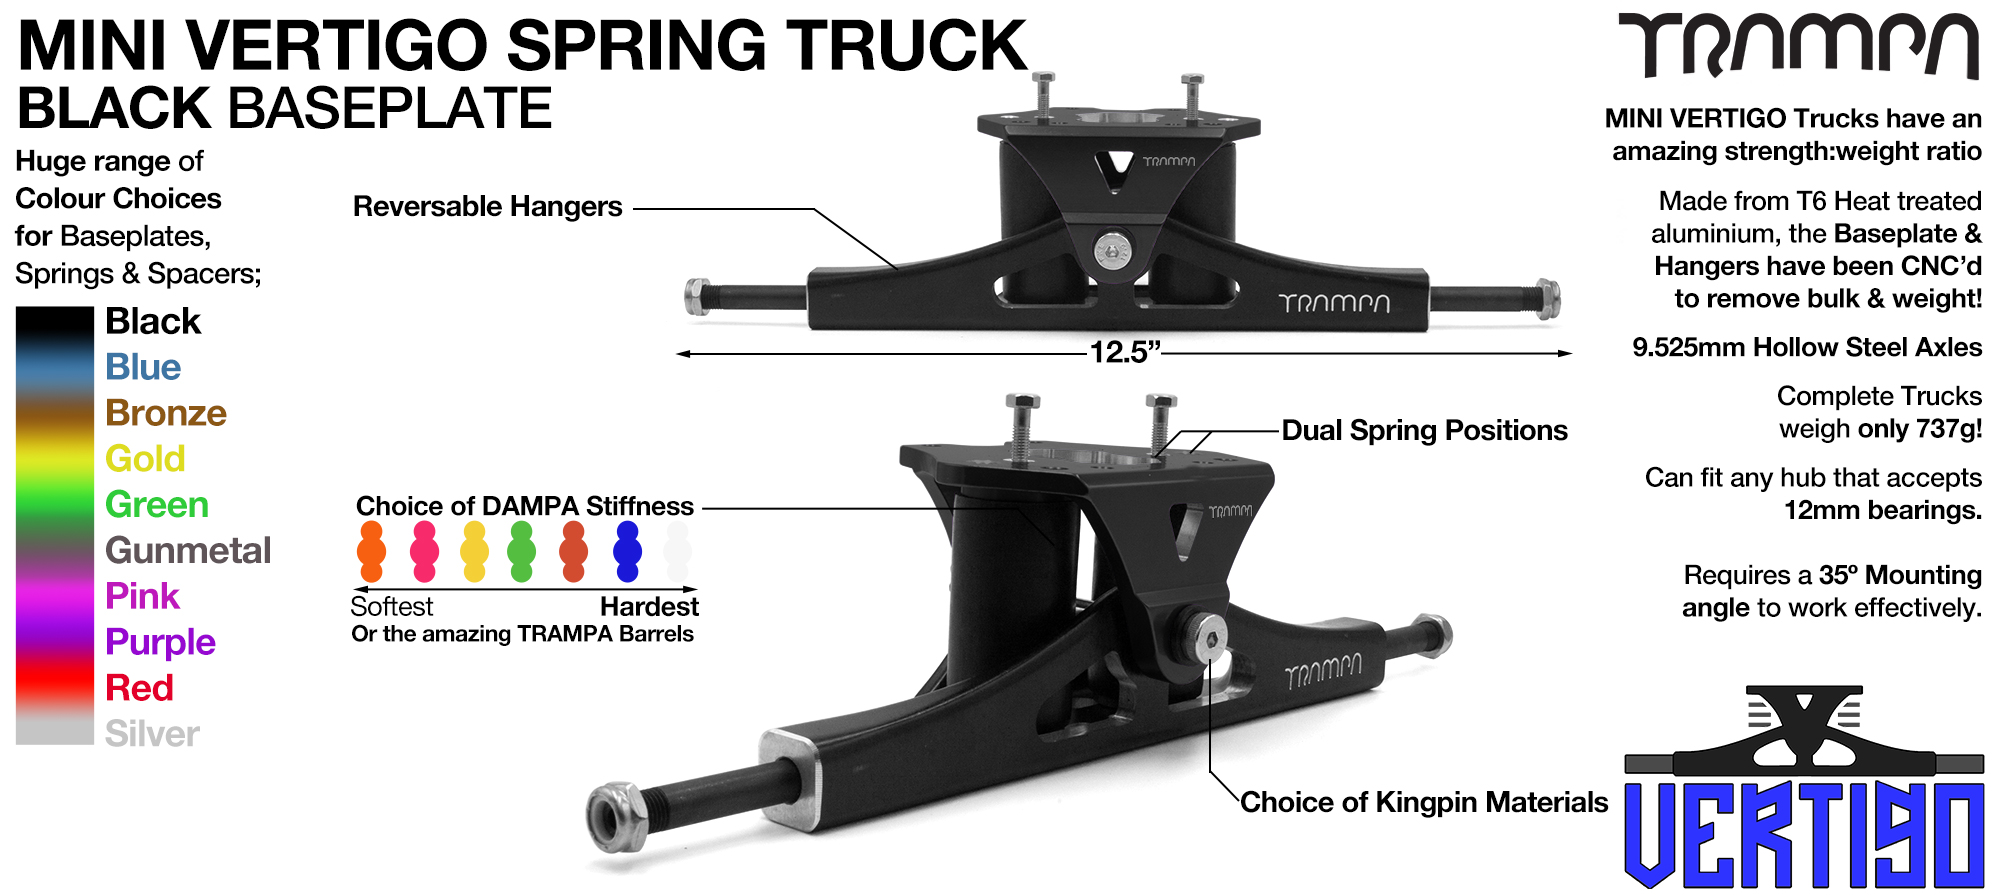 Mini VERTIGO TRAMPA TRUCKS - CNC FORGED Channel Hanger with 9.525mm HOLLOW Steel Axle CNC Baseplate Stainless Steel Kingpin - BLACK